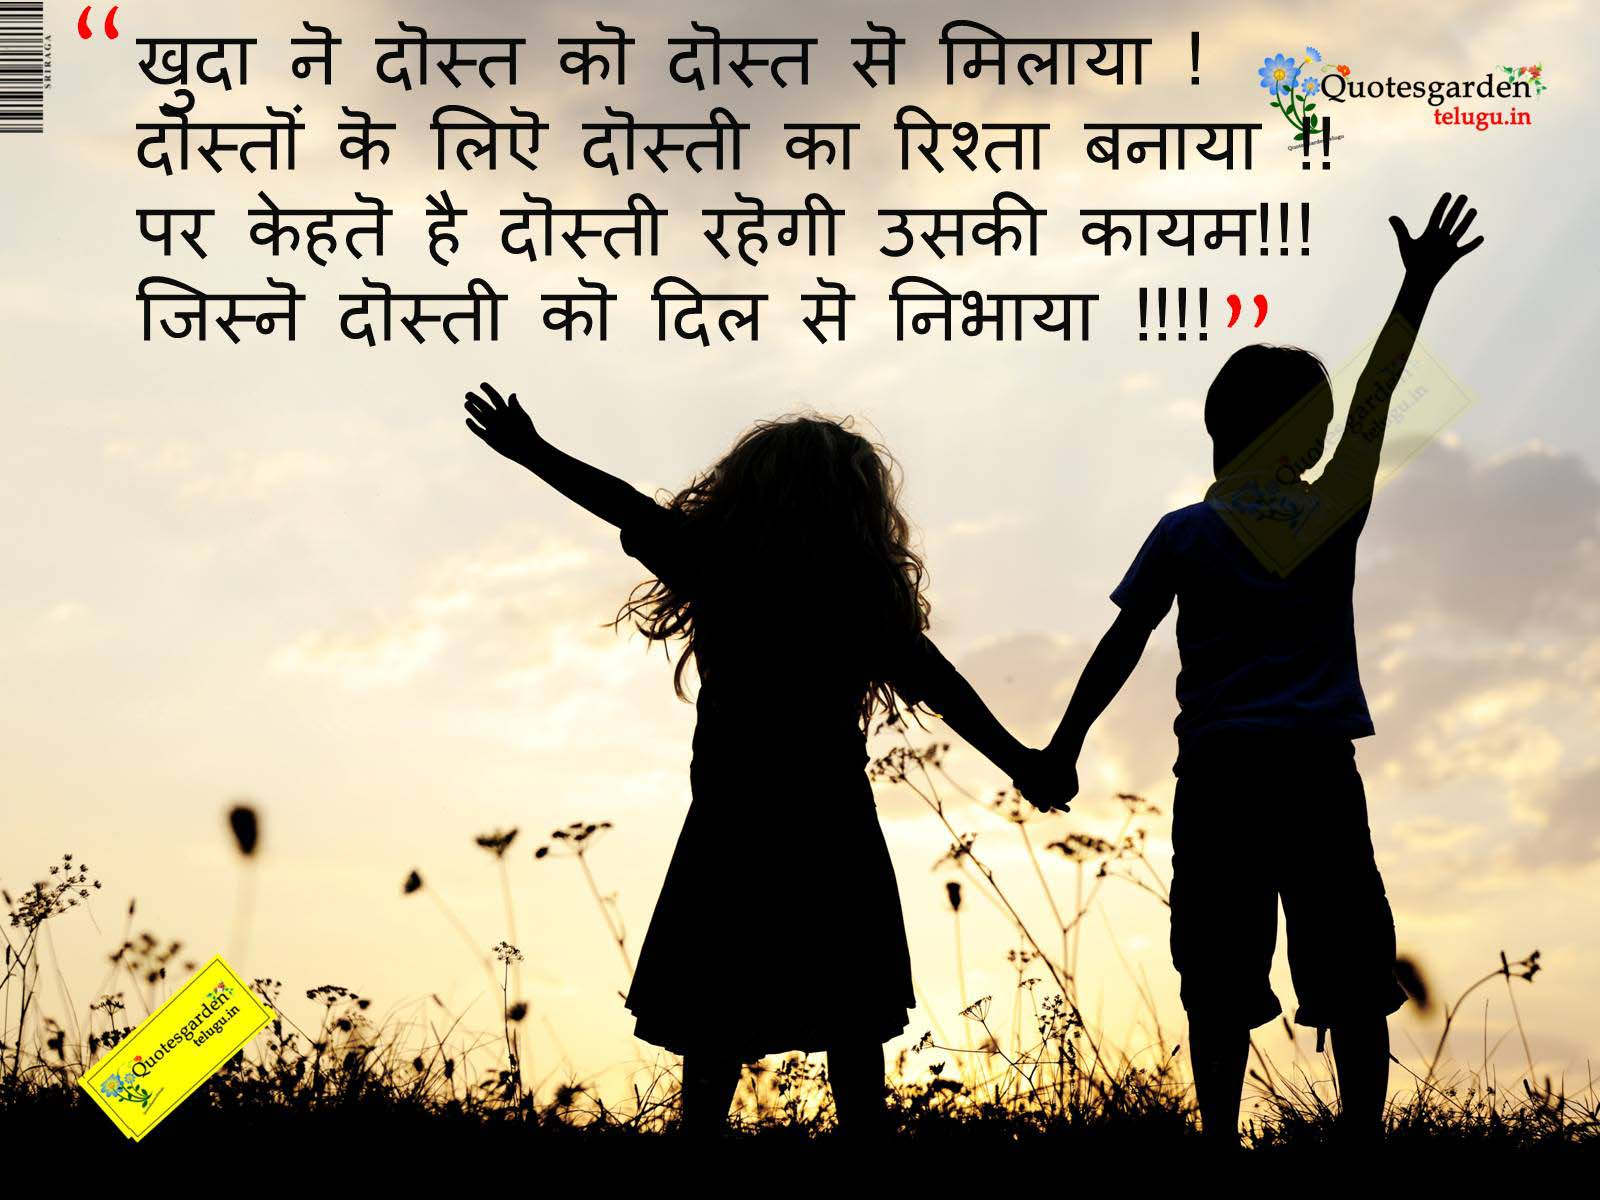 Quotes On Friendship And Love In Hindi: Best Friendship Quotes In Hindi. QuotesGram